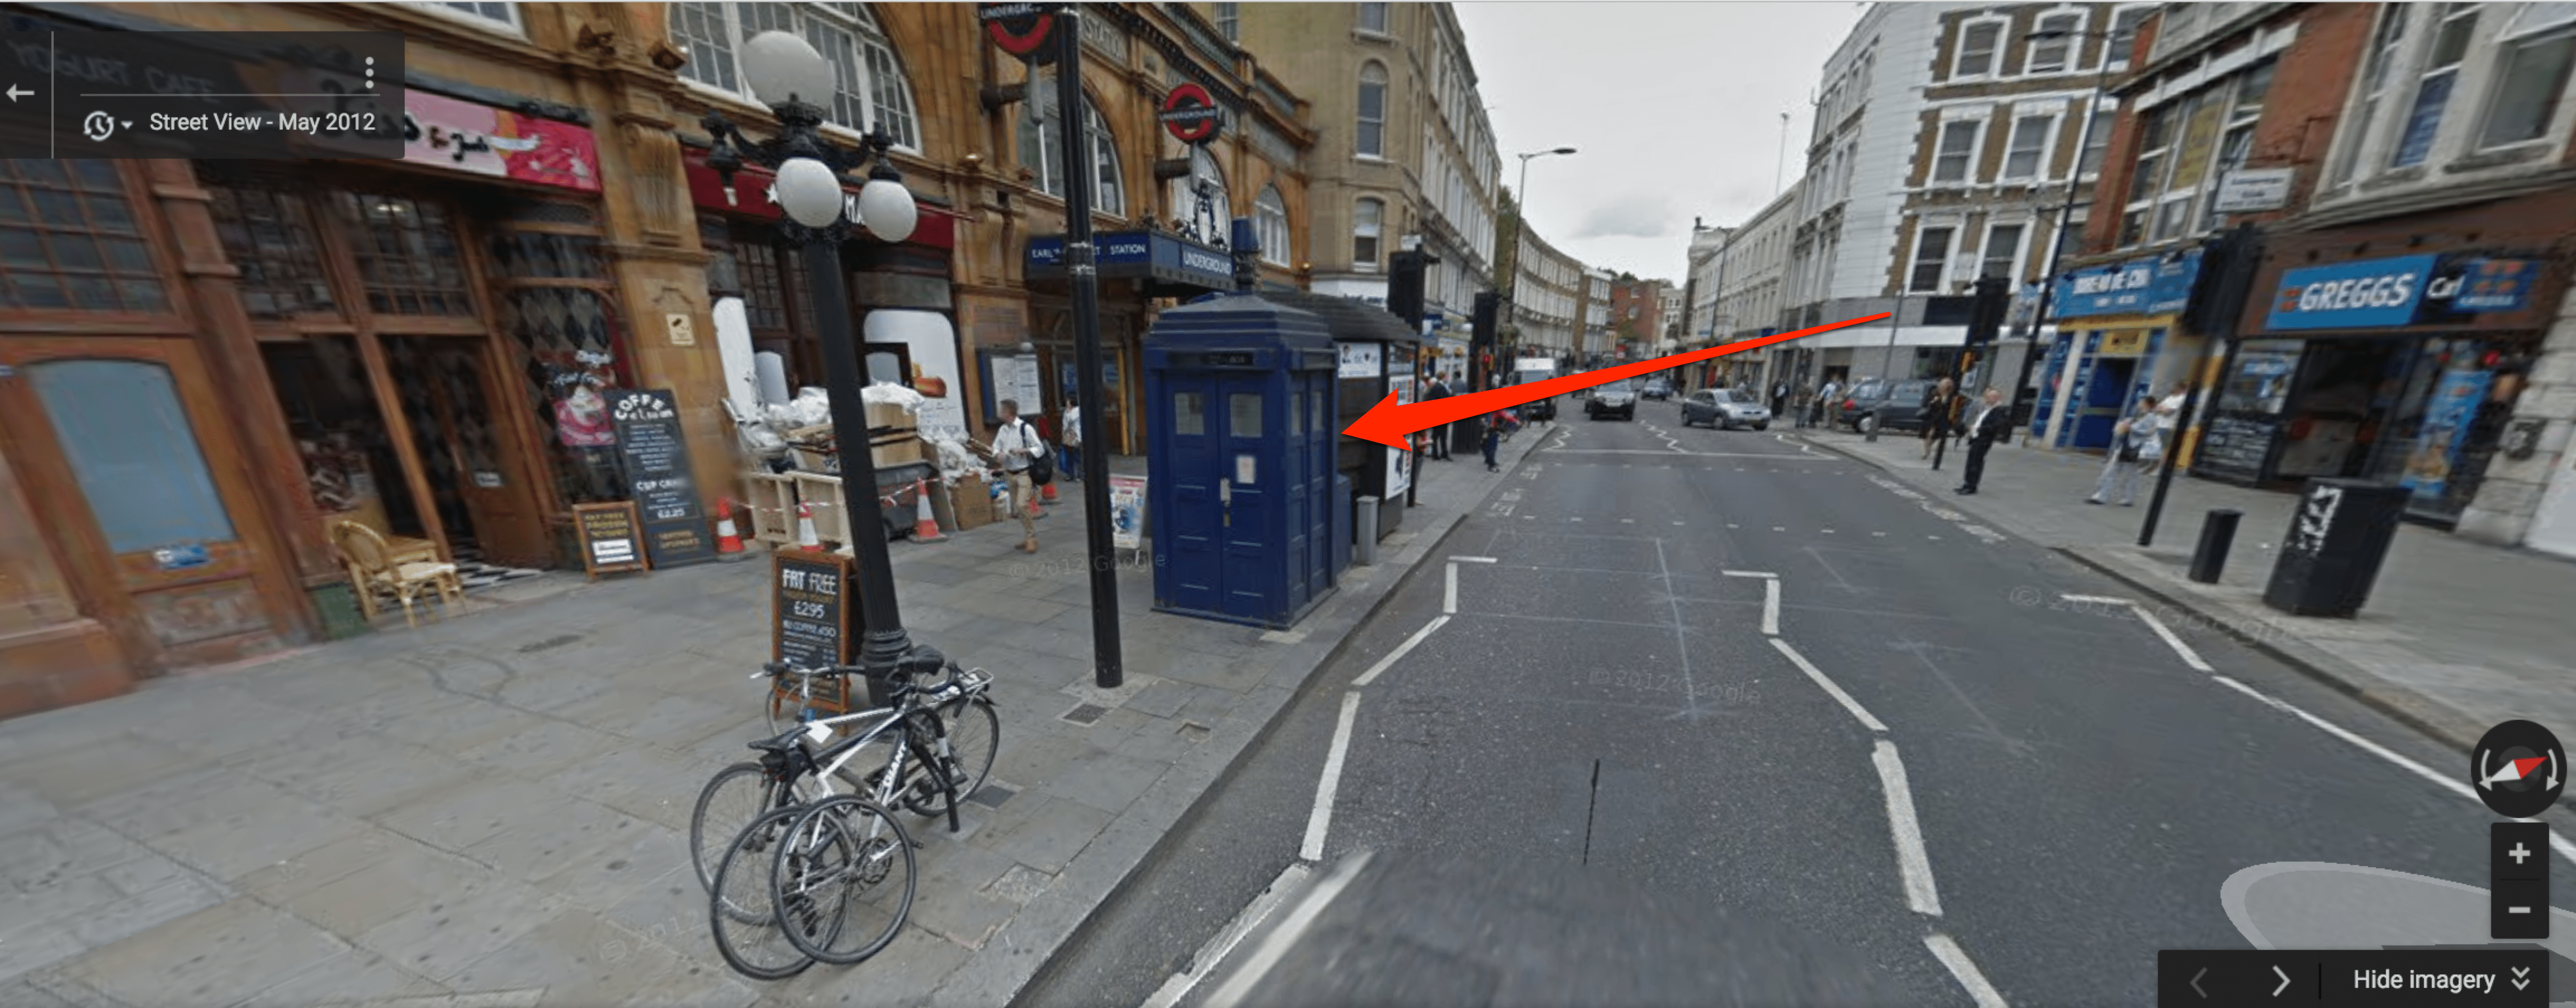 How To Find The Doctor Who Tardis In Google Maps - Google maps street view us windows 10